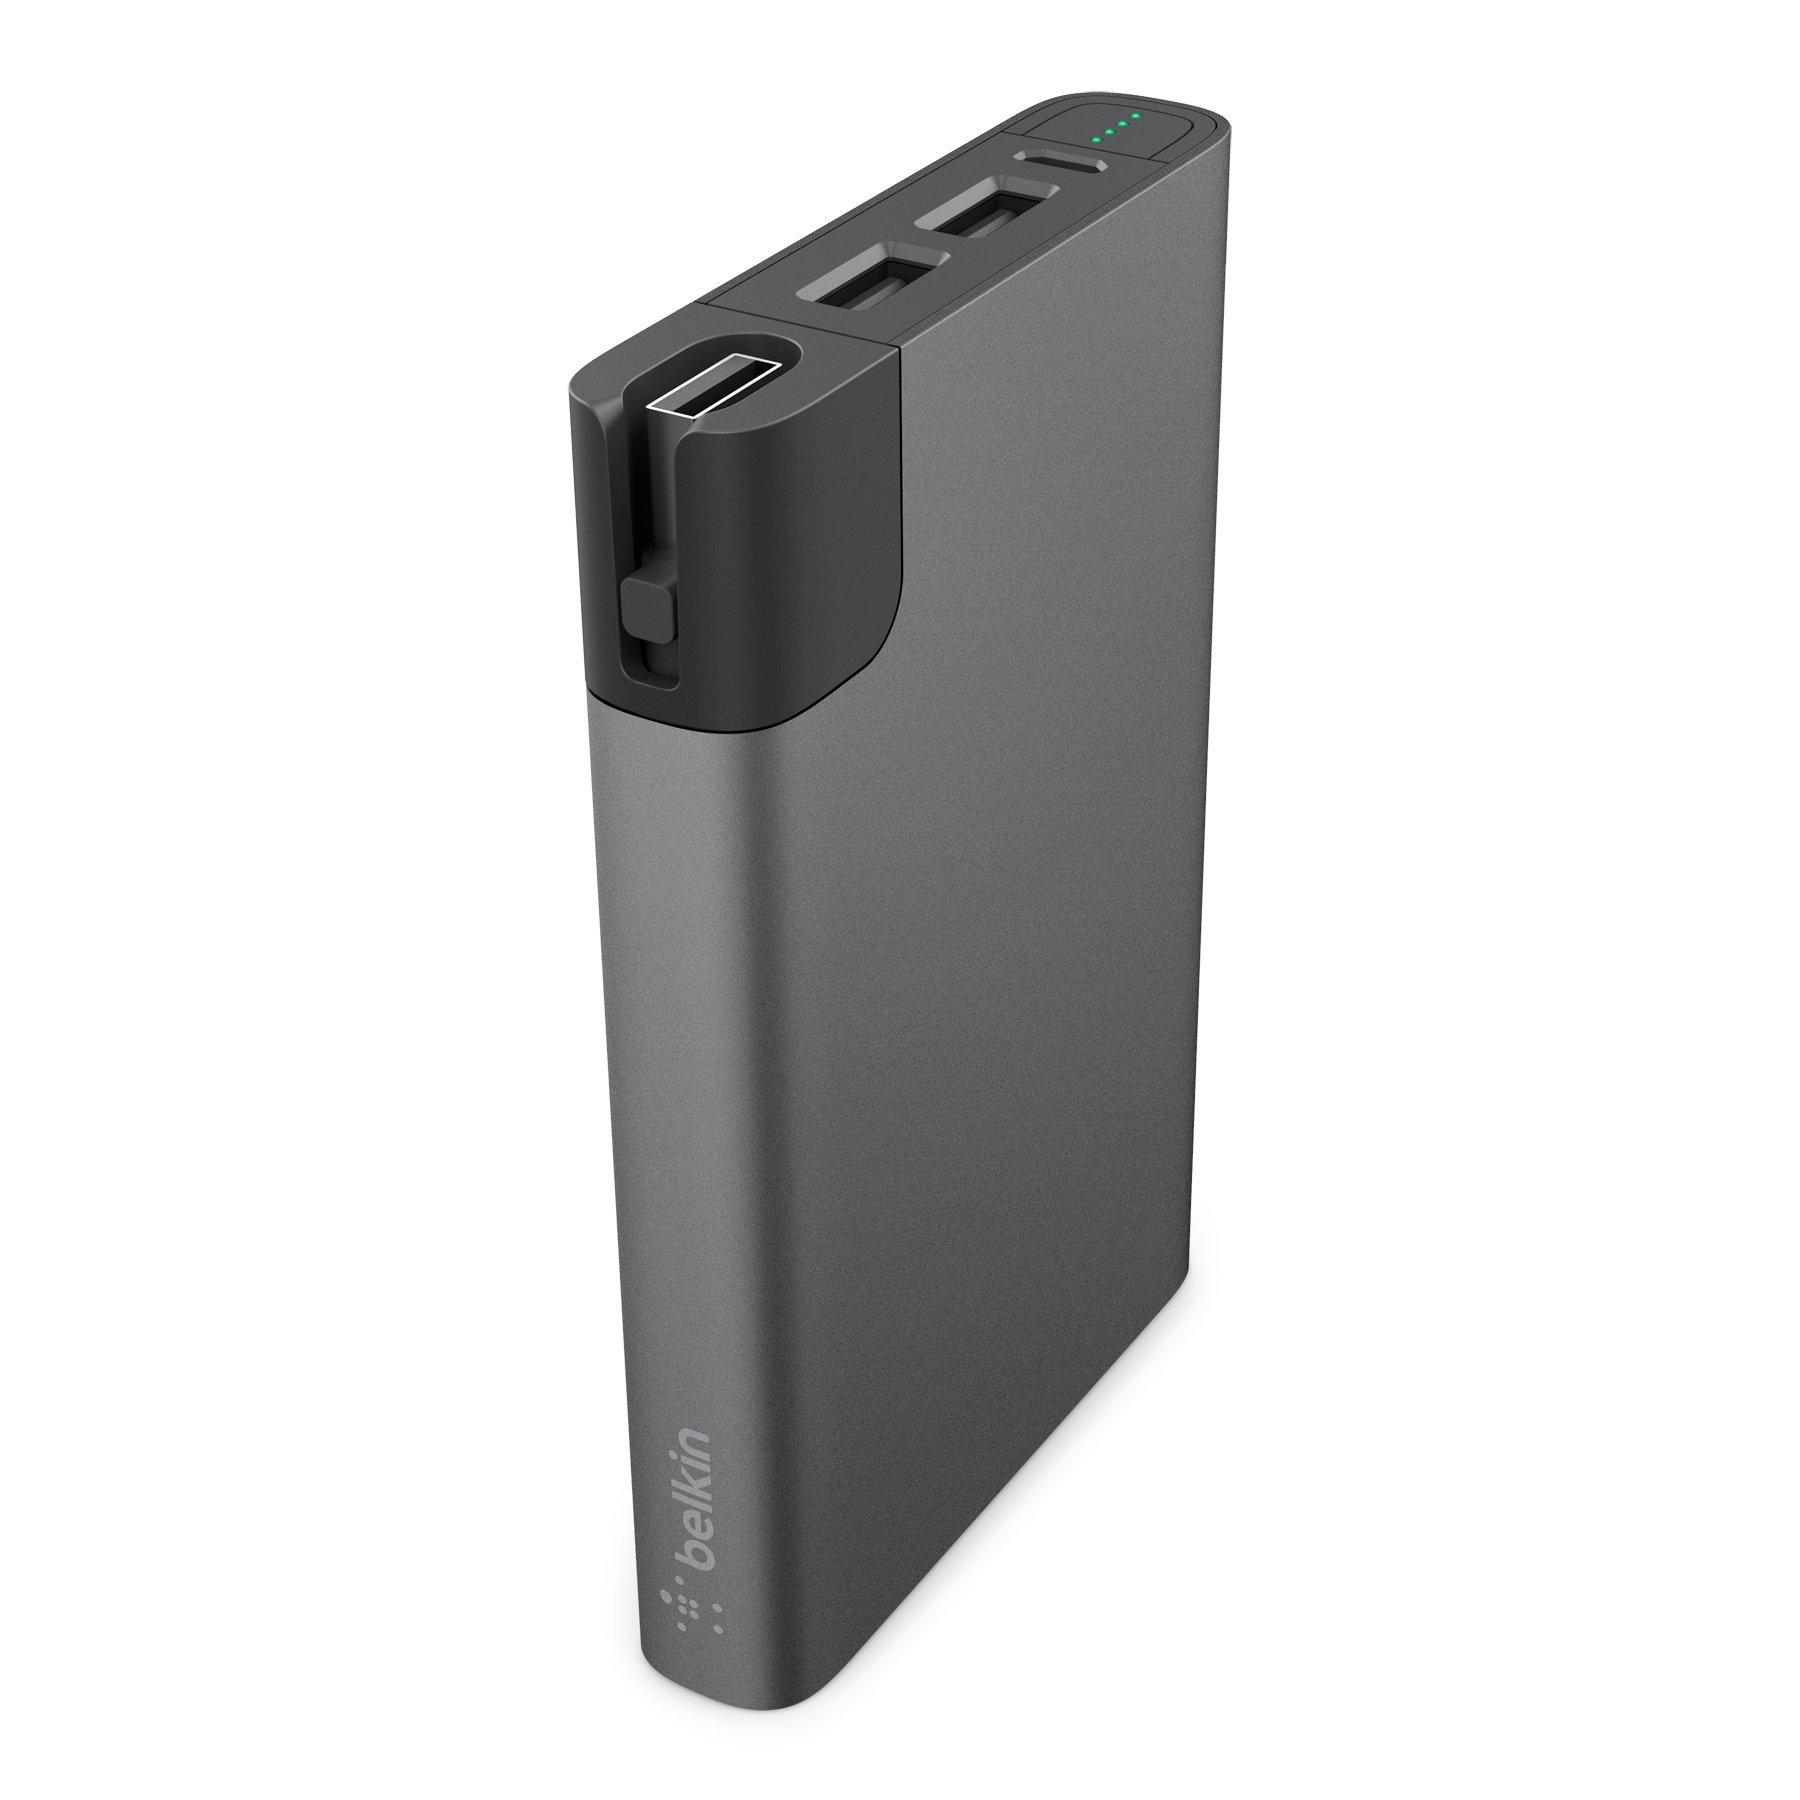 Belkin MFi Certified MIXIT Metallic 10000 mAh Power Rockstar Battery Pack with Dual USB Ports and Cable Storage (Gray)